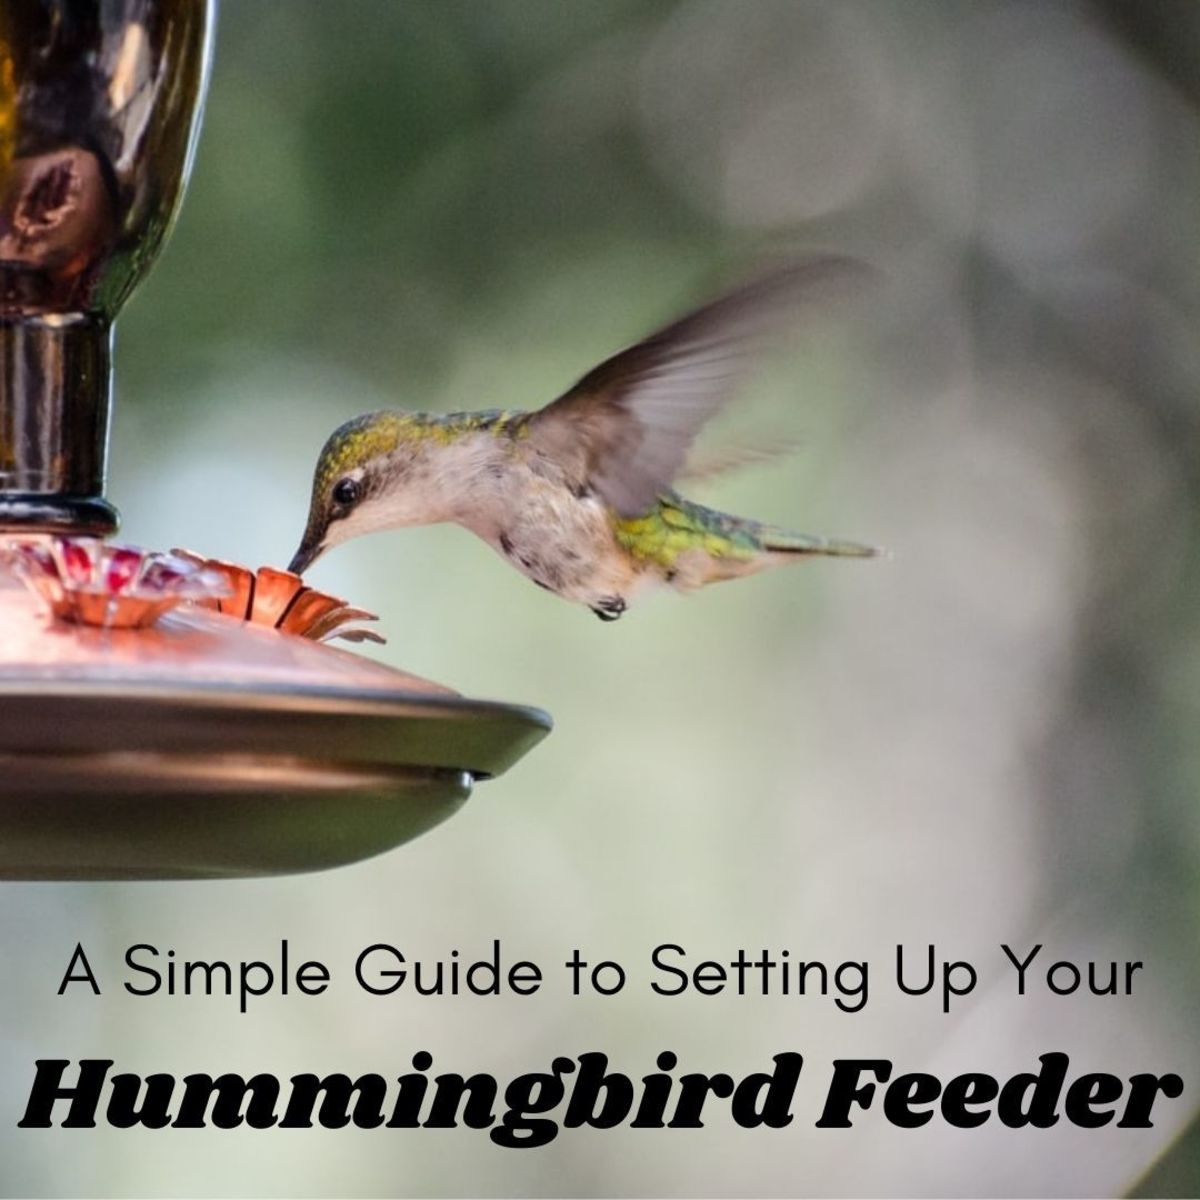 Setting up a hummingbird feeder is a simple process and will keep hummingbirds coming back every season.